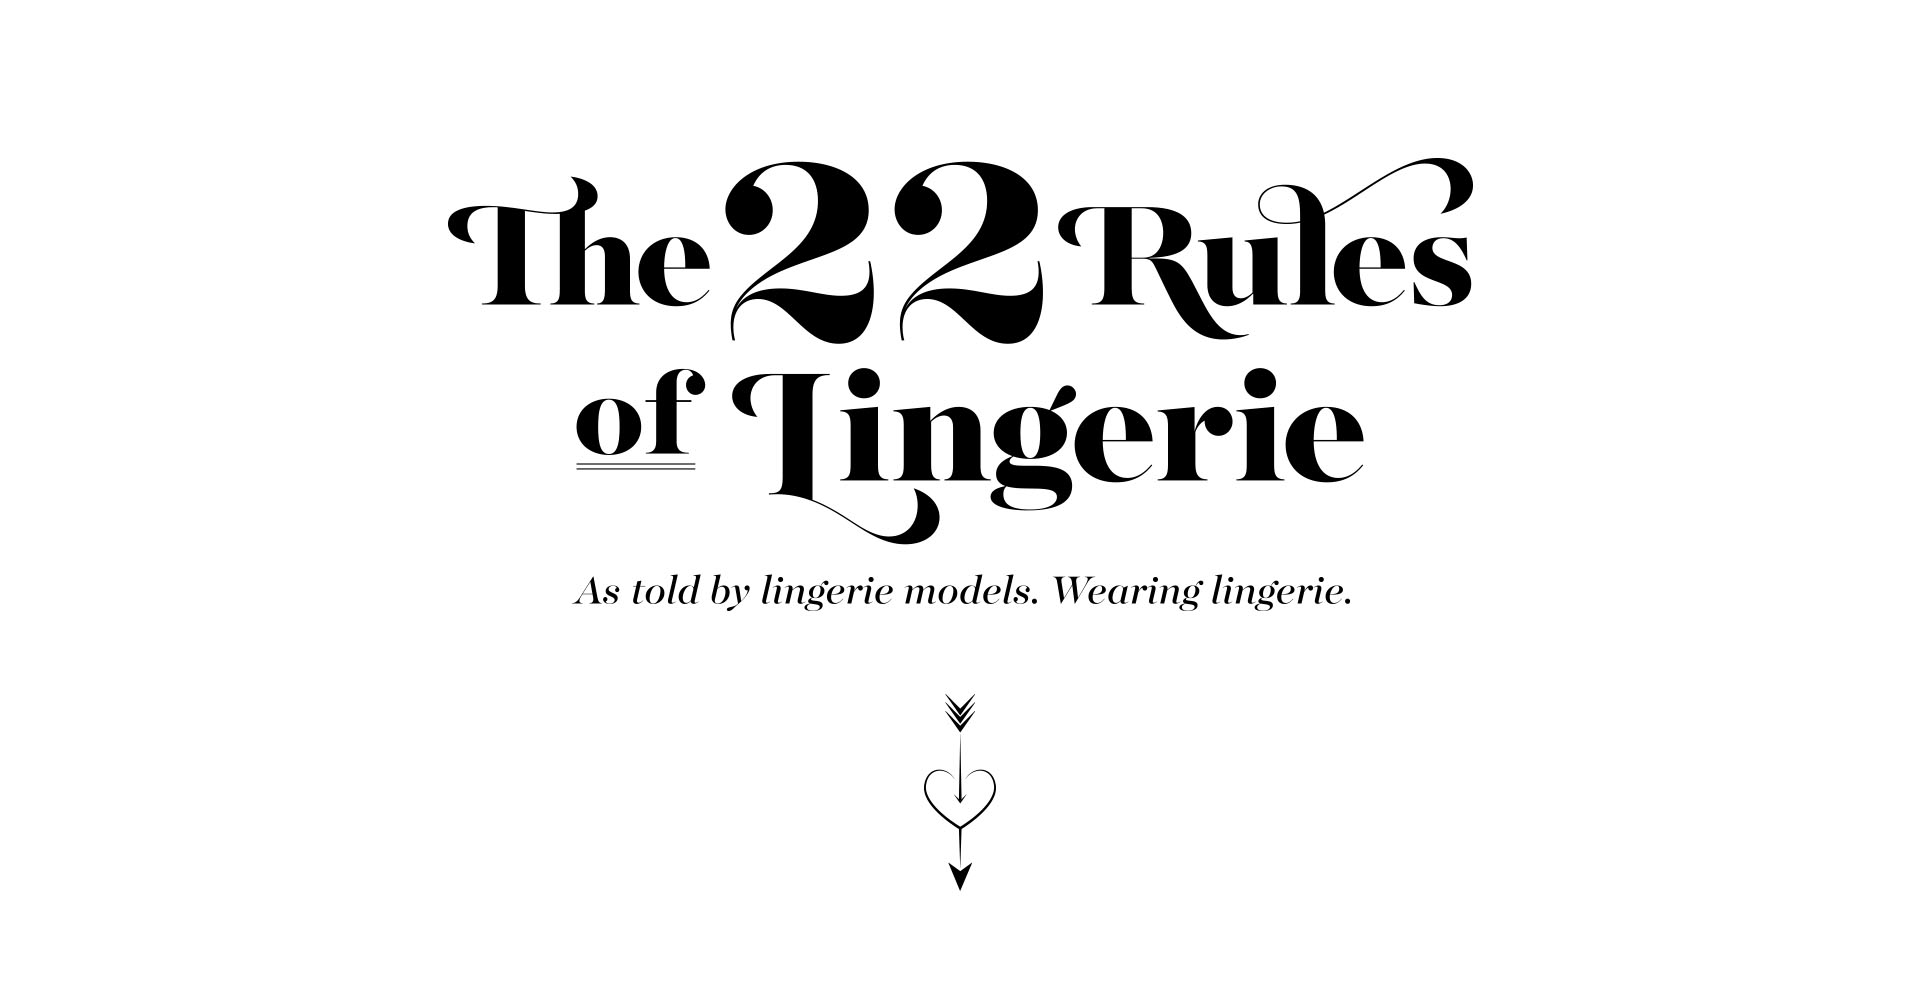 The 22 Rules of Lingerie